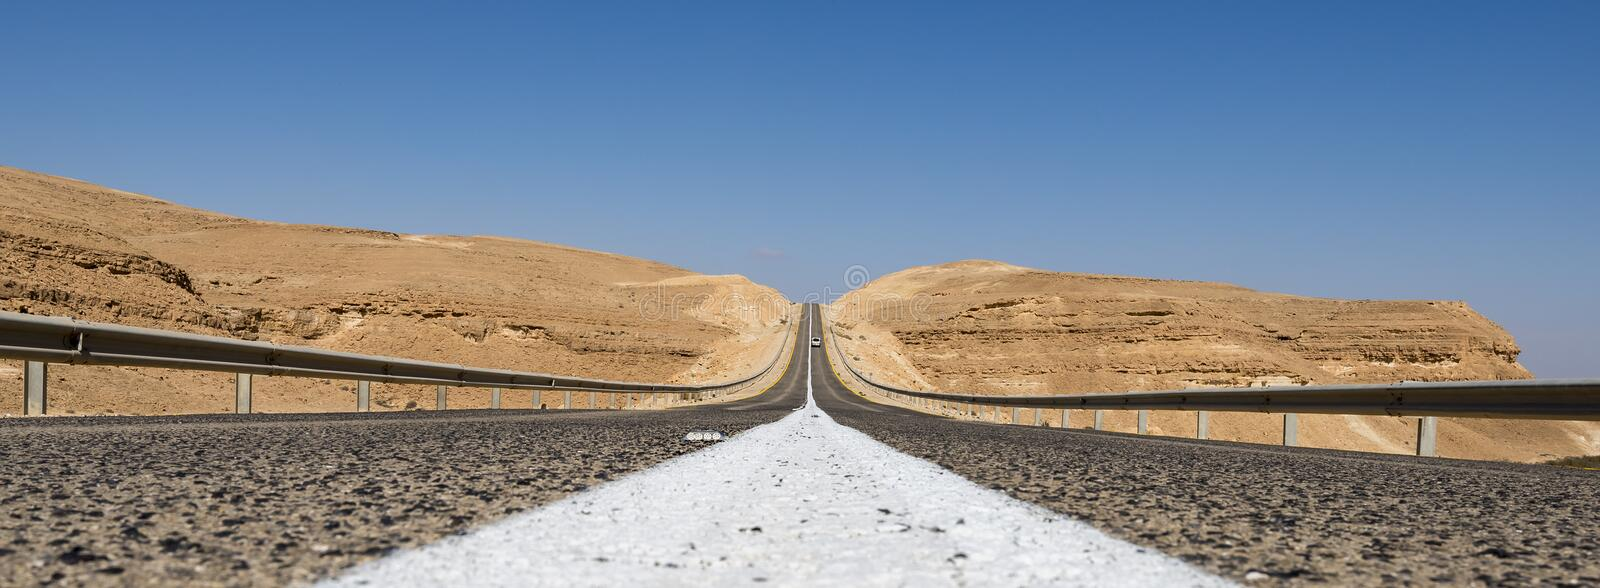 Road in desert of the Negev, Israel royalty free stock images